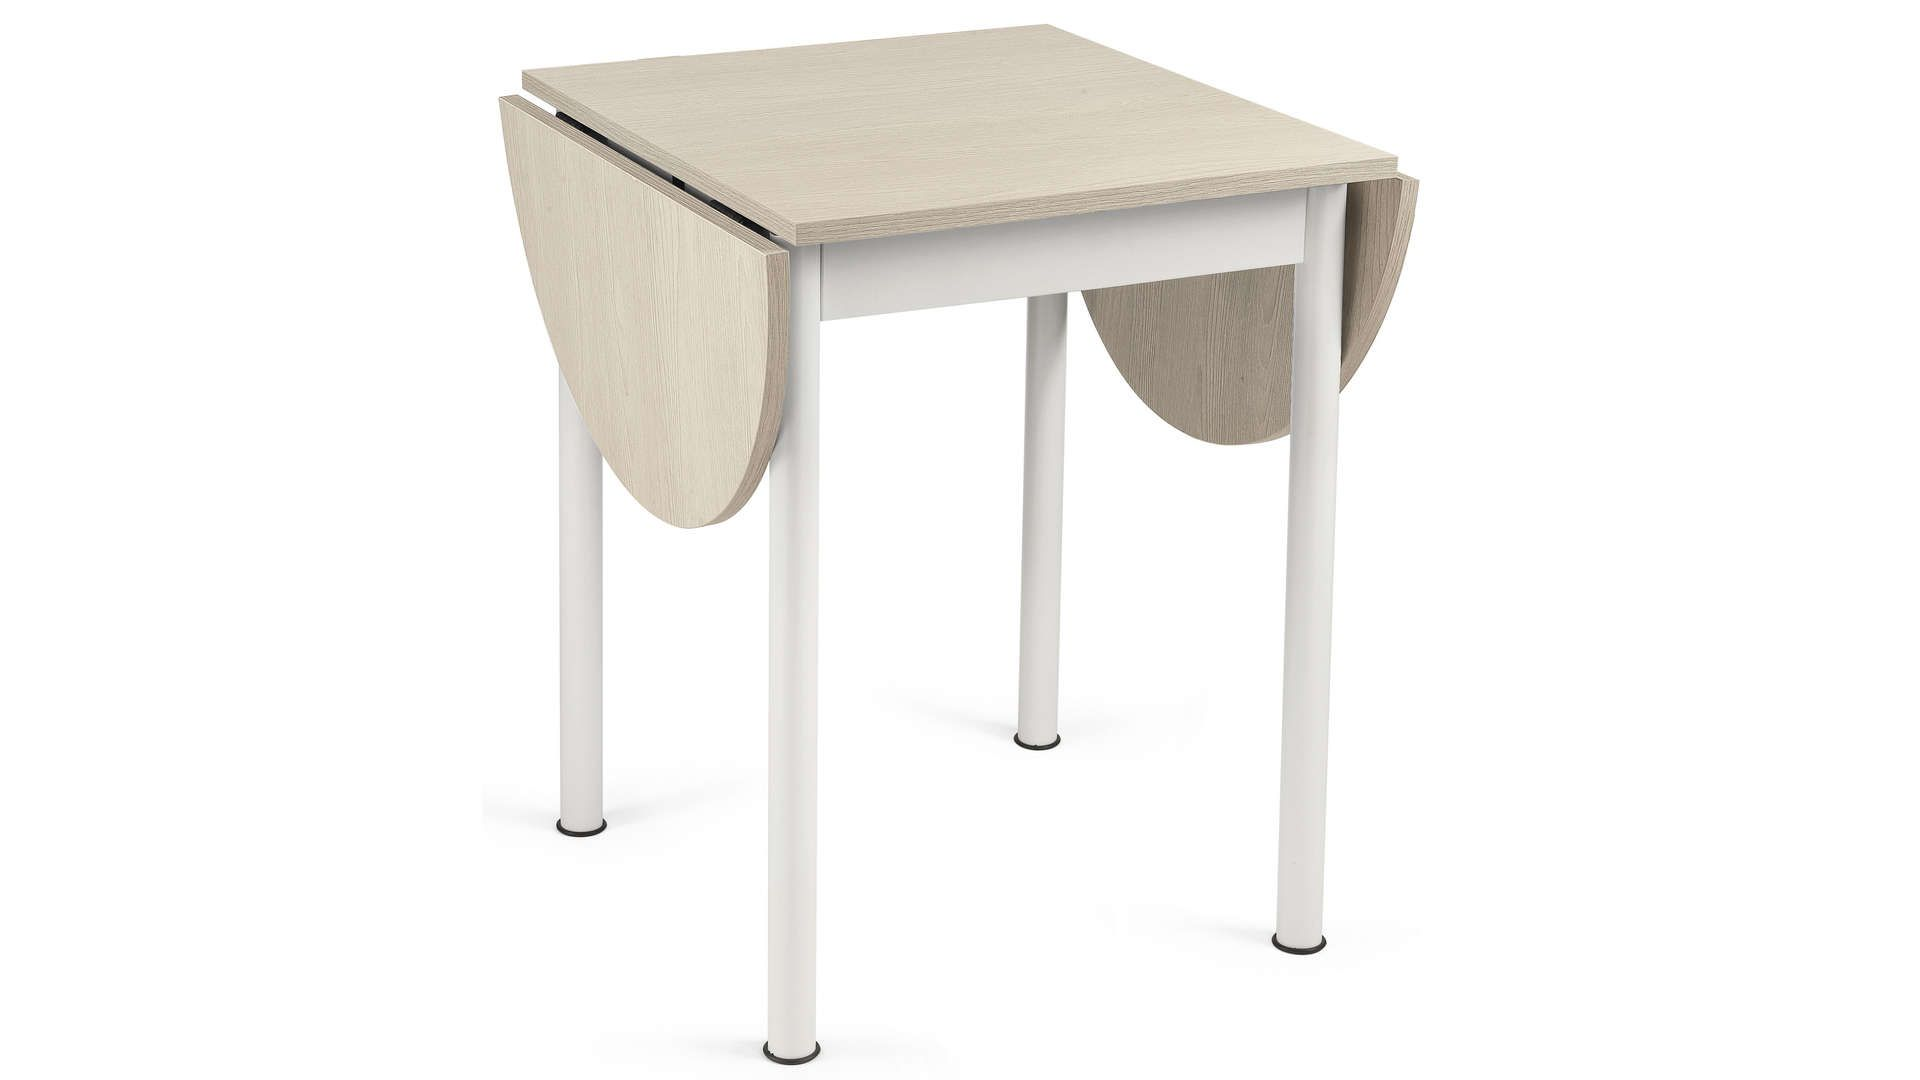 Table Carree Avec Allonge L115 Cm Max 648170 Mobilier De Salon Meuble Cuisine Conforama